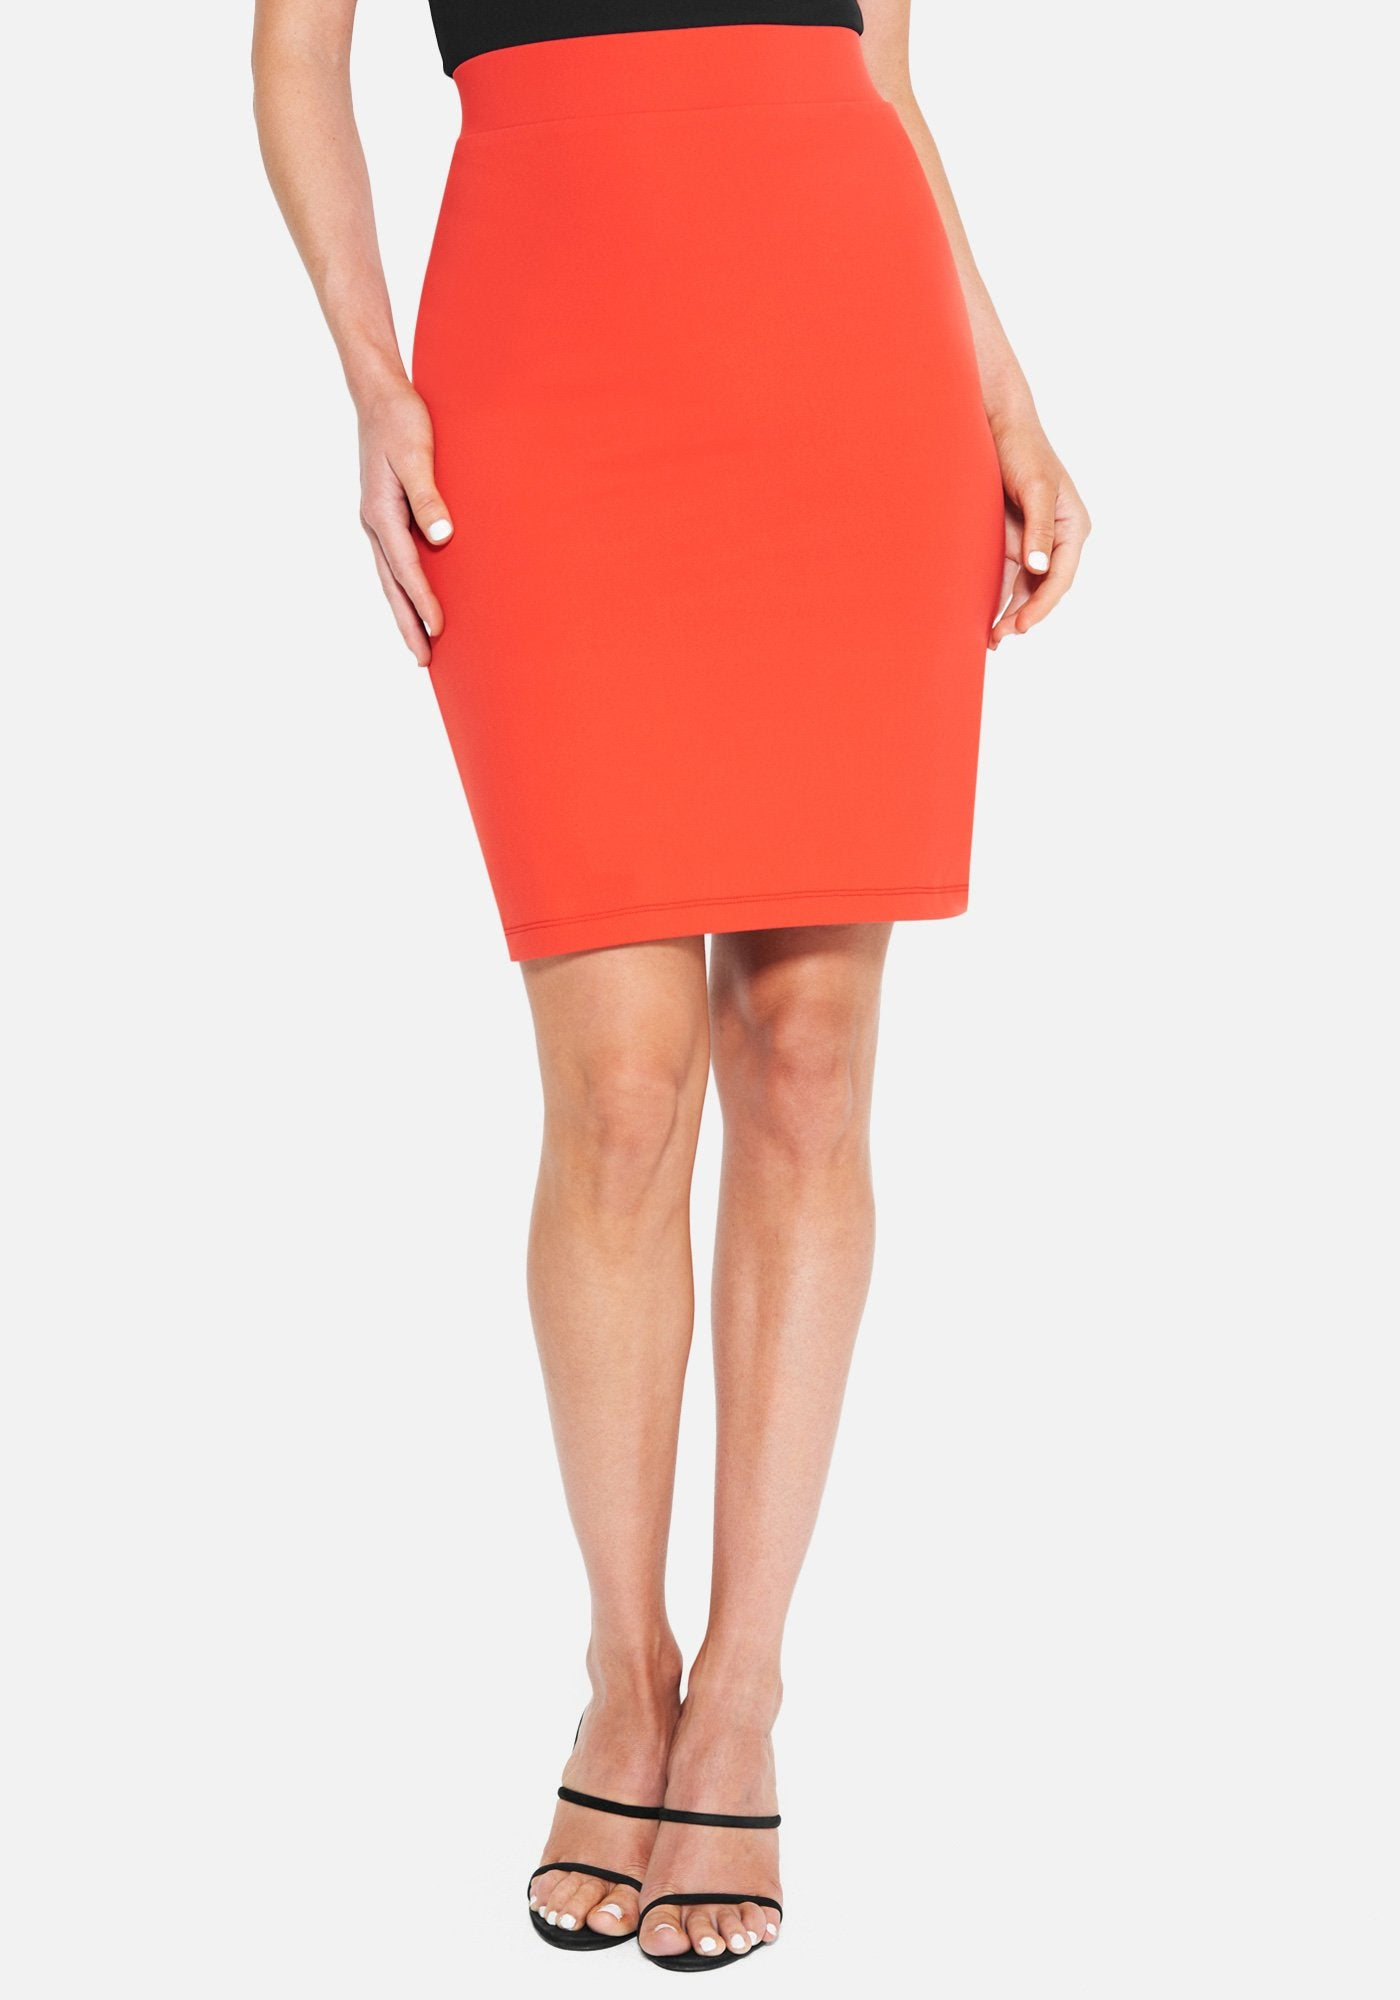 Bebe Women's Lya Midi Knit Skirt, Size XXS in FIERY RED Spandex/Nylon